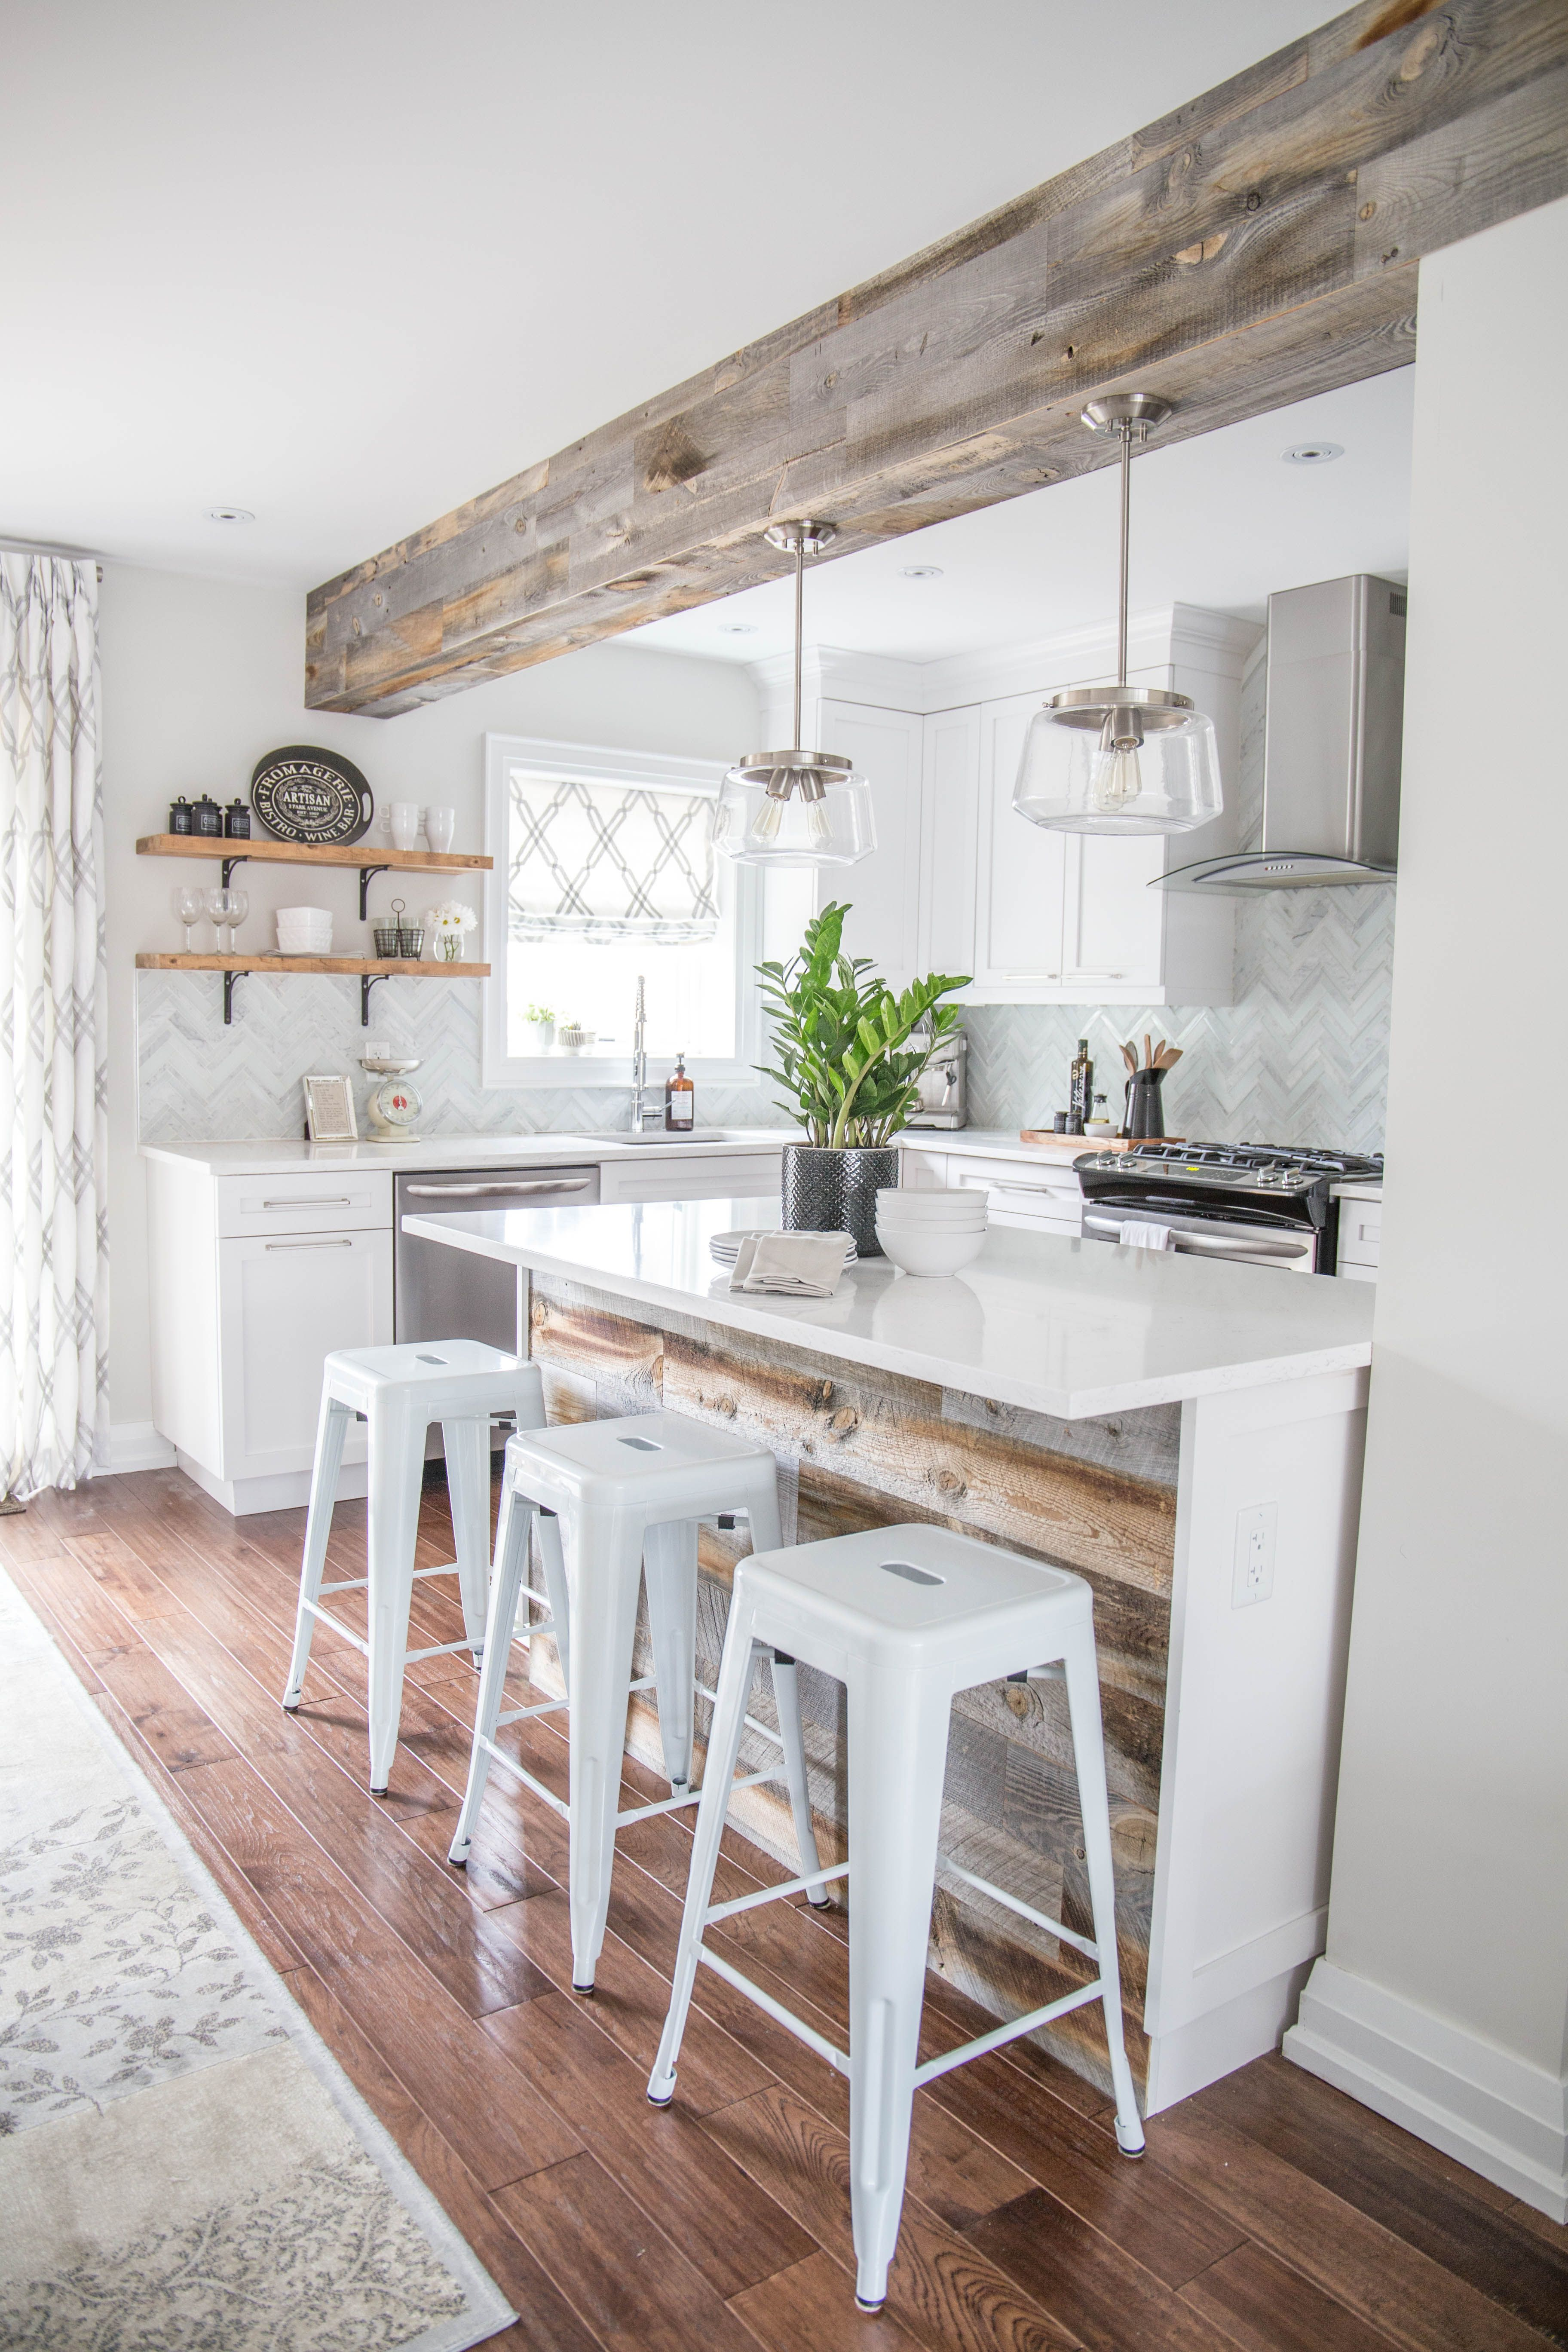 Property Brothers Kitchen Reveal by Karin Bennett Designs ...